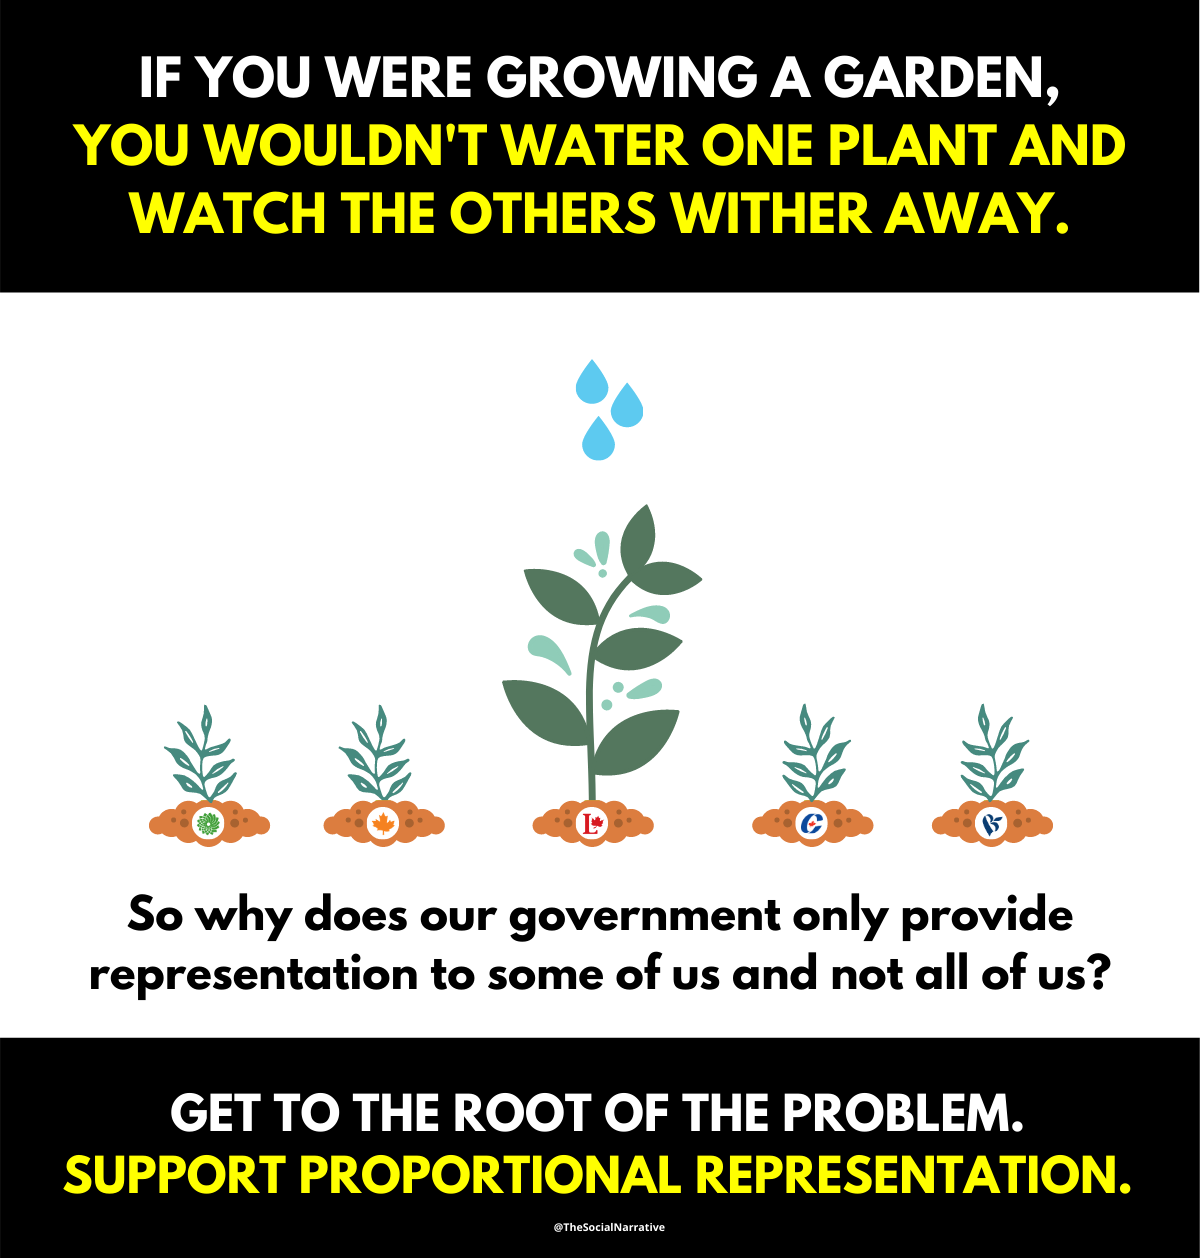 Pro Rep pictured as a garden.